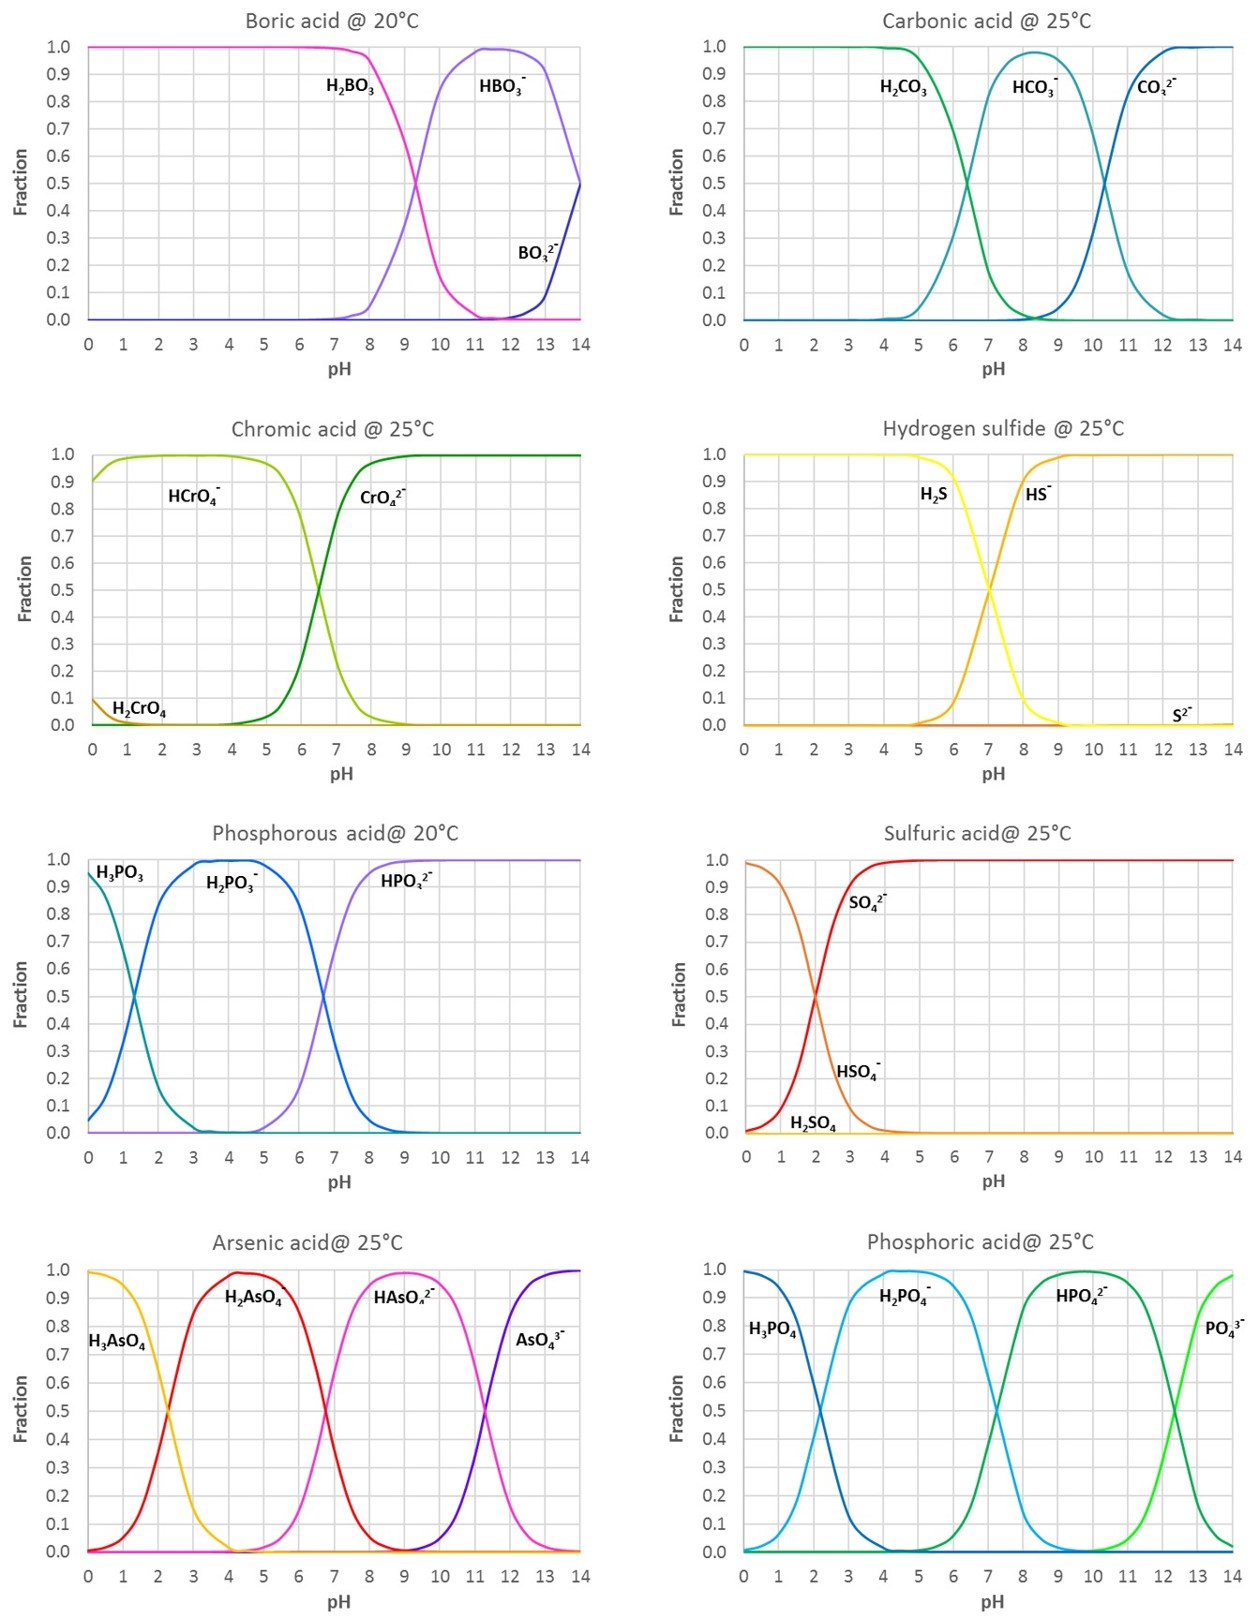 Fractions of acid ions as function of pH